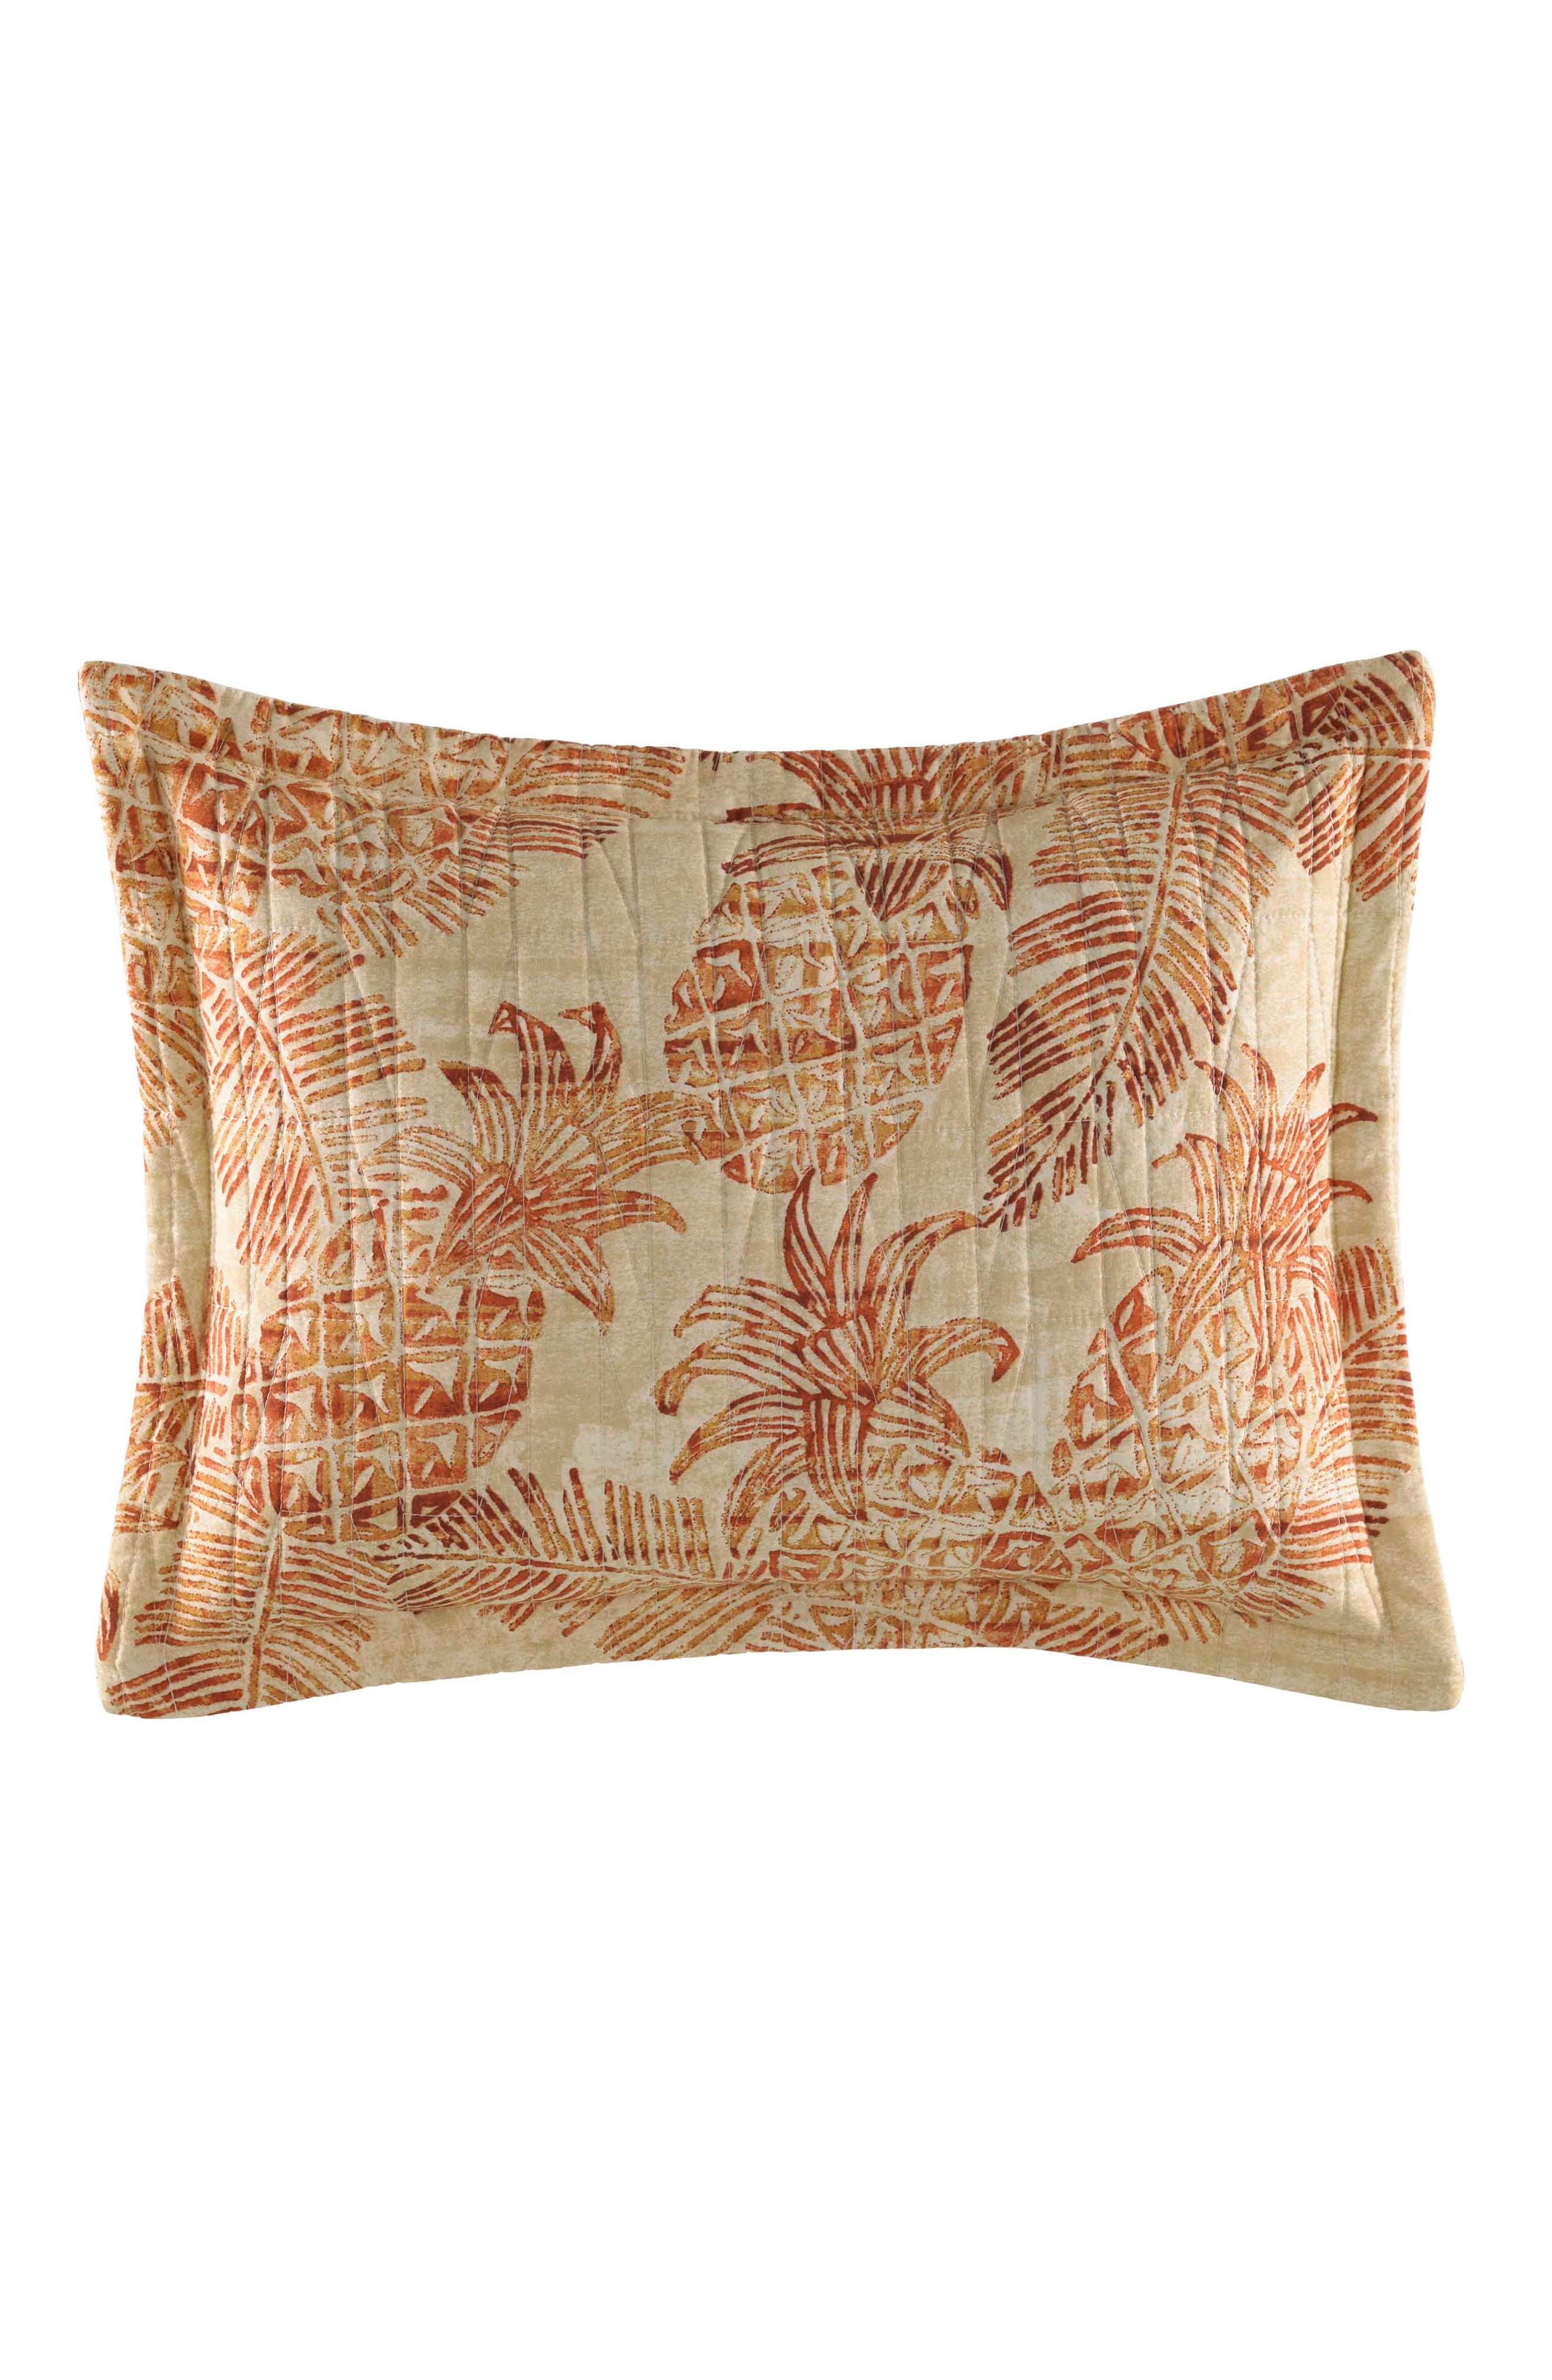 TOMMY BAHAMA Batik Pineapple Quilted Accent Pillow, Main, color, CORAL